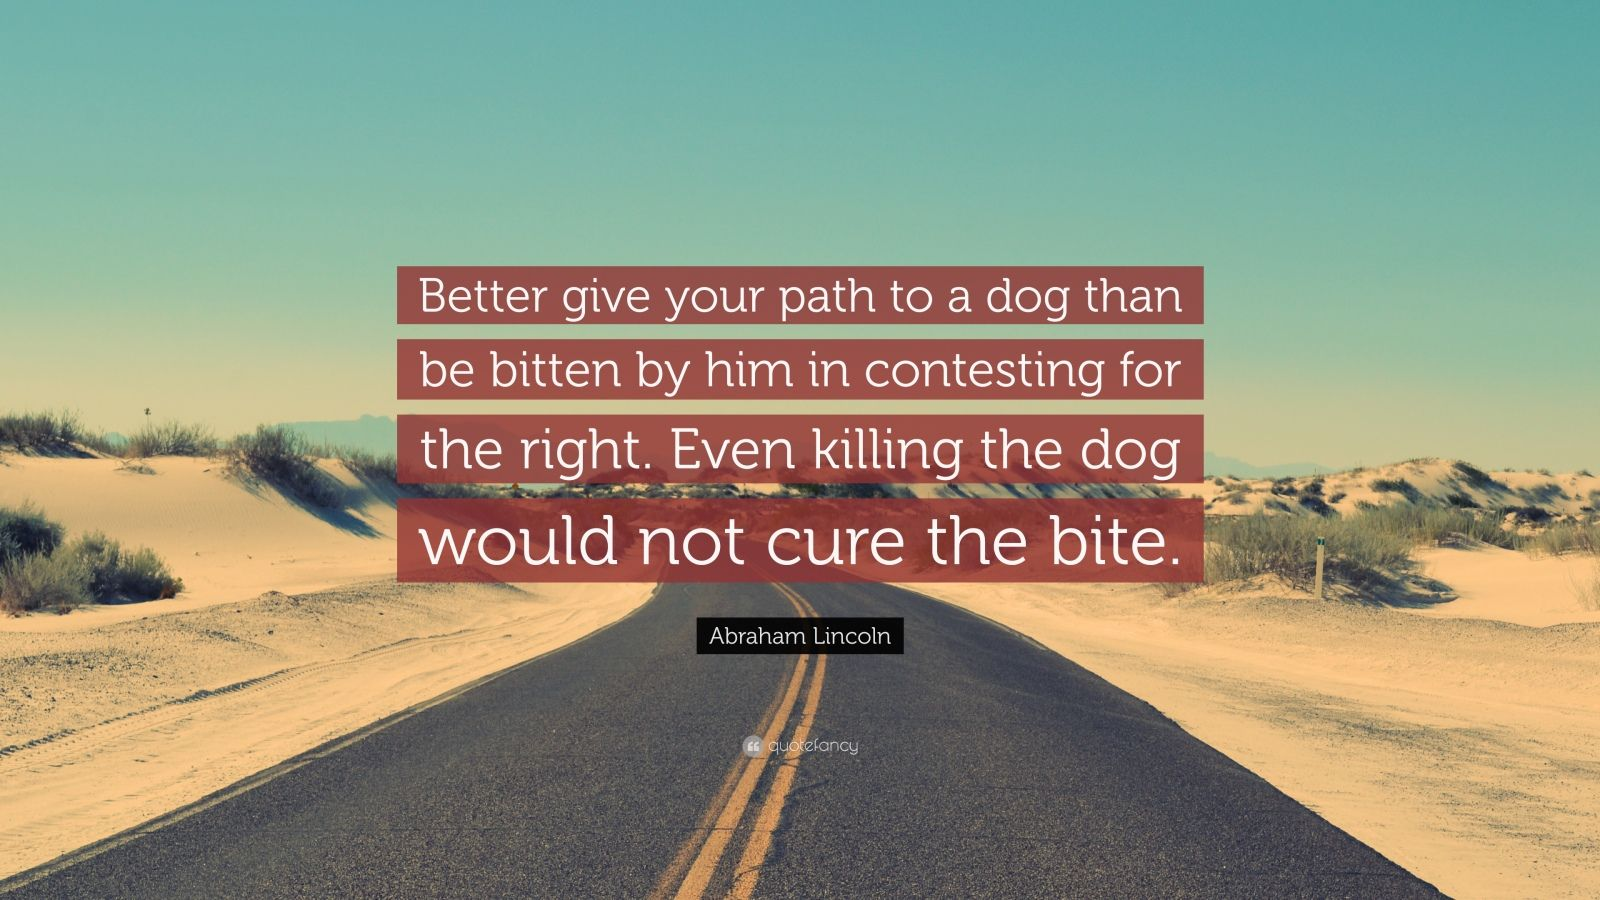 """Abraham Lincoln Quote: """"Better give your path to a dog than be bitten by him in contesting for the right. Even killing the dog would not cure the bite."""""""